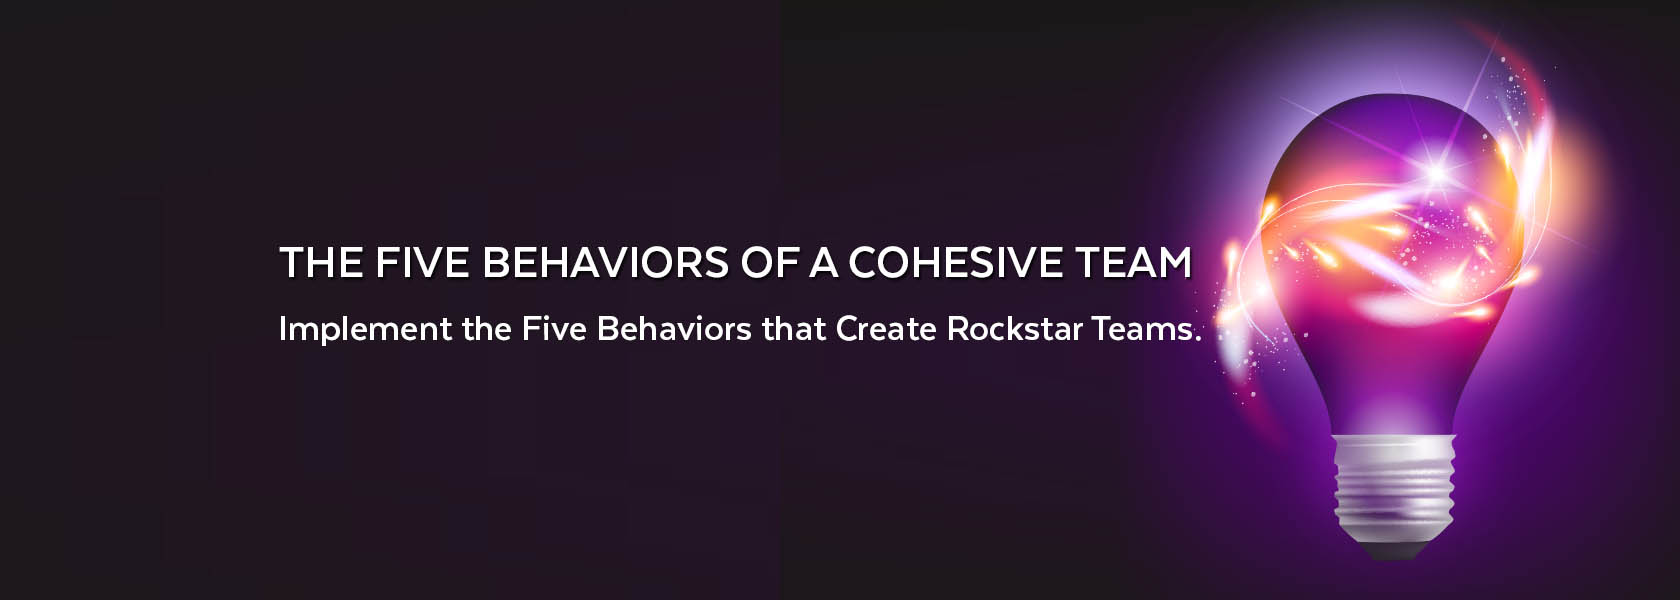 Implement Five Behaviors of a Cohesive Team